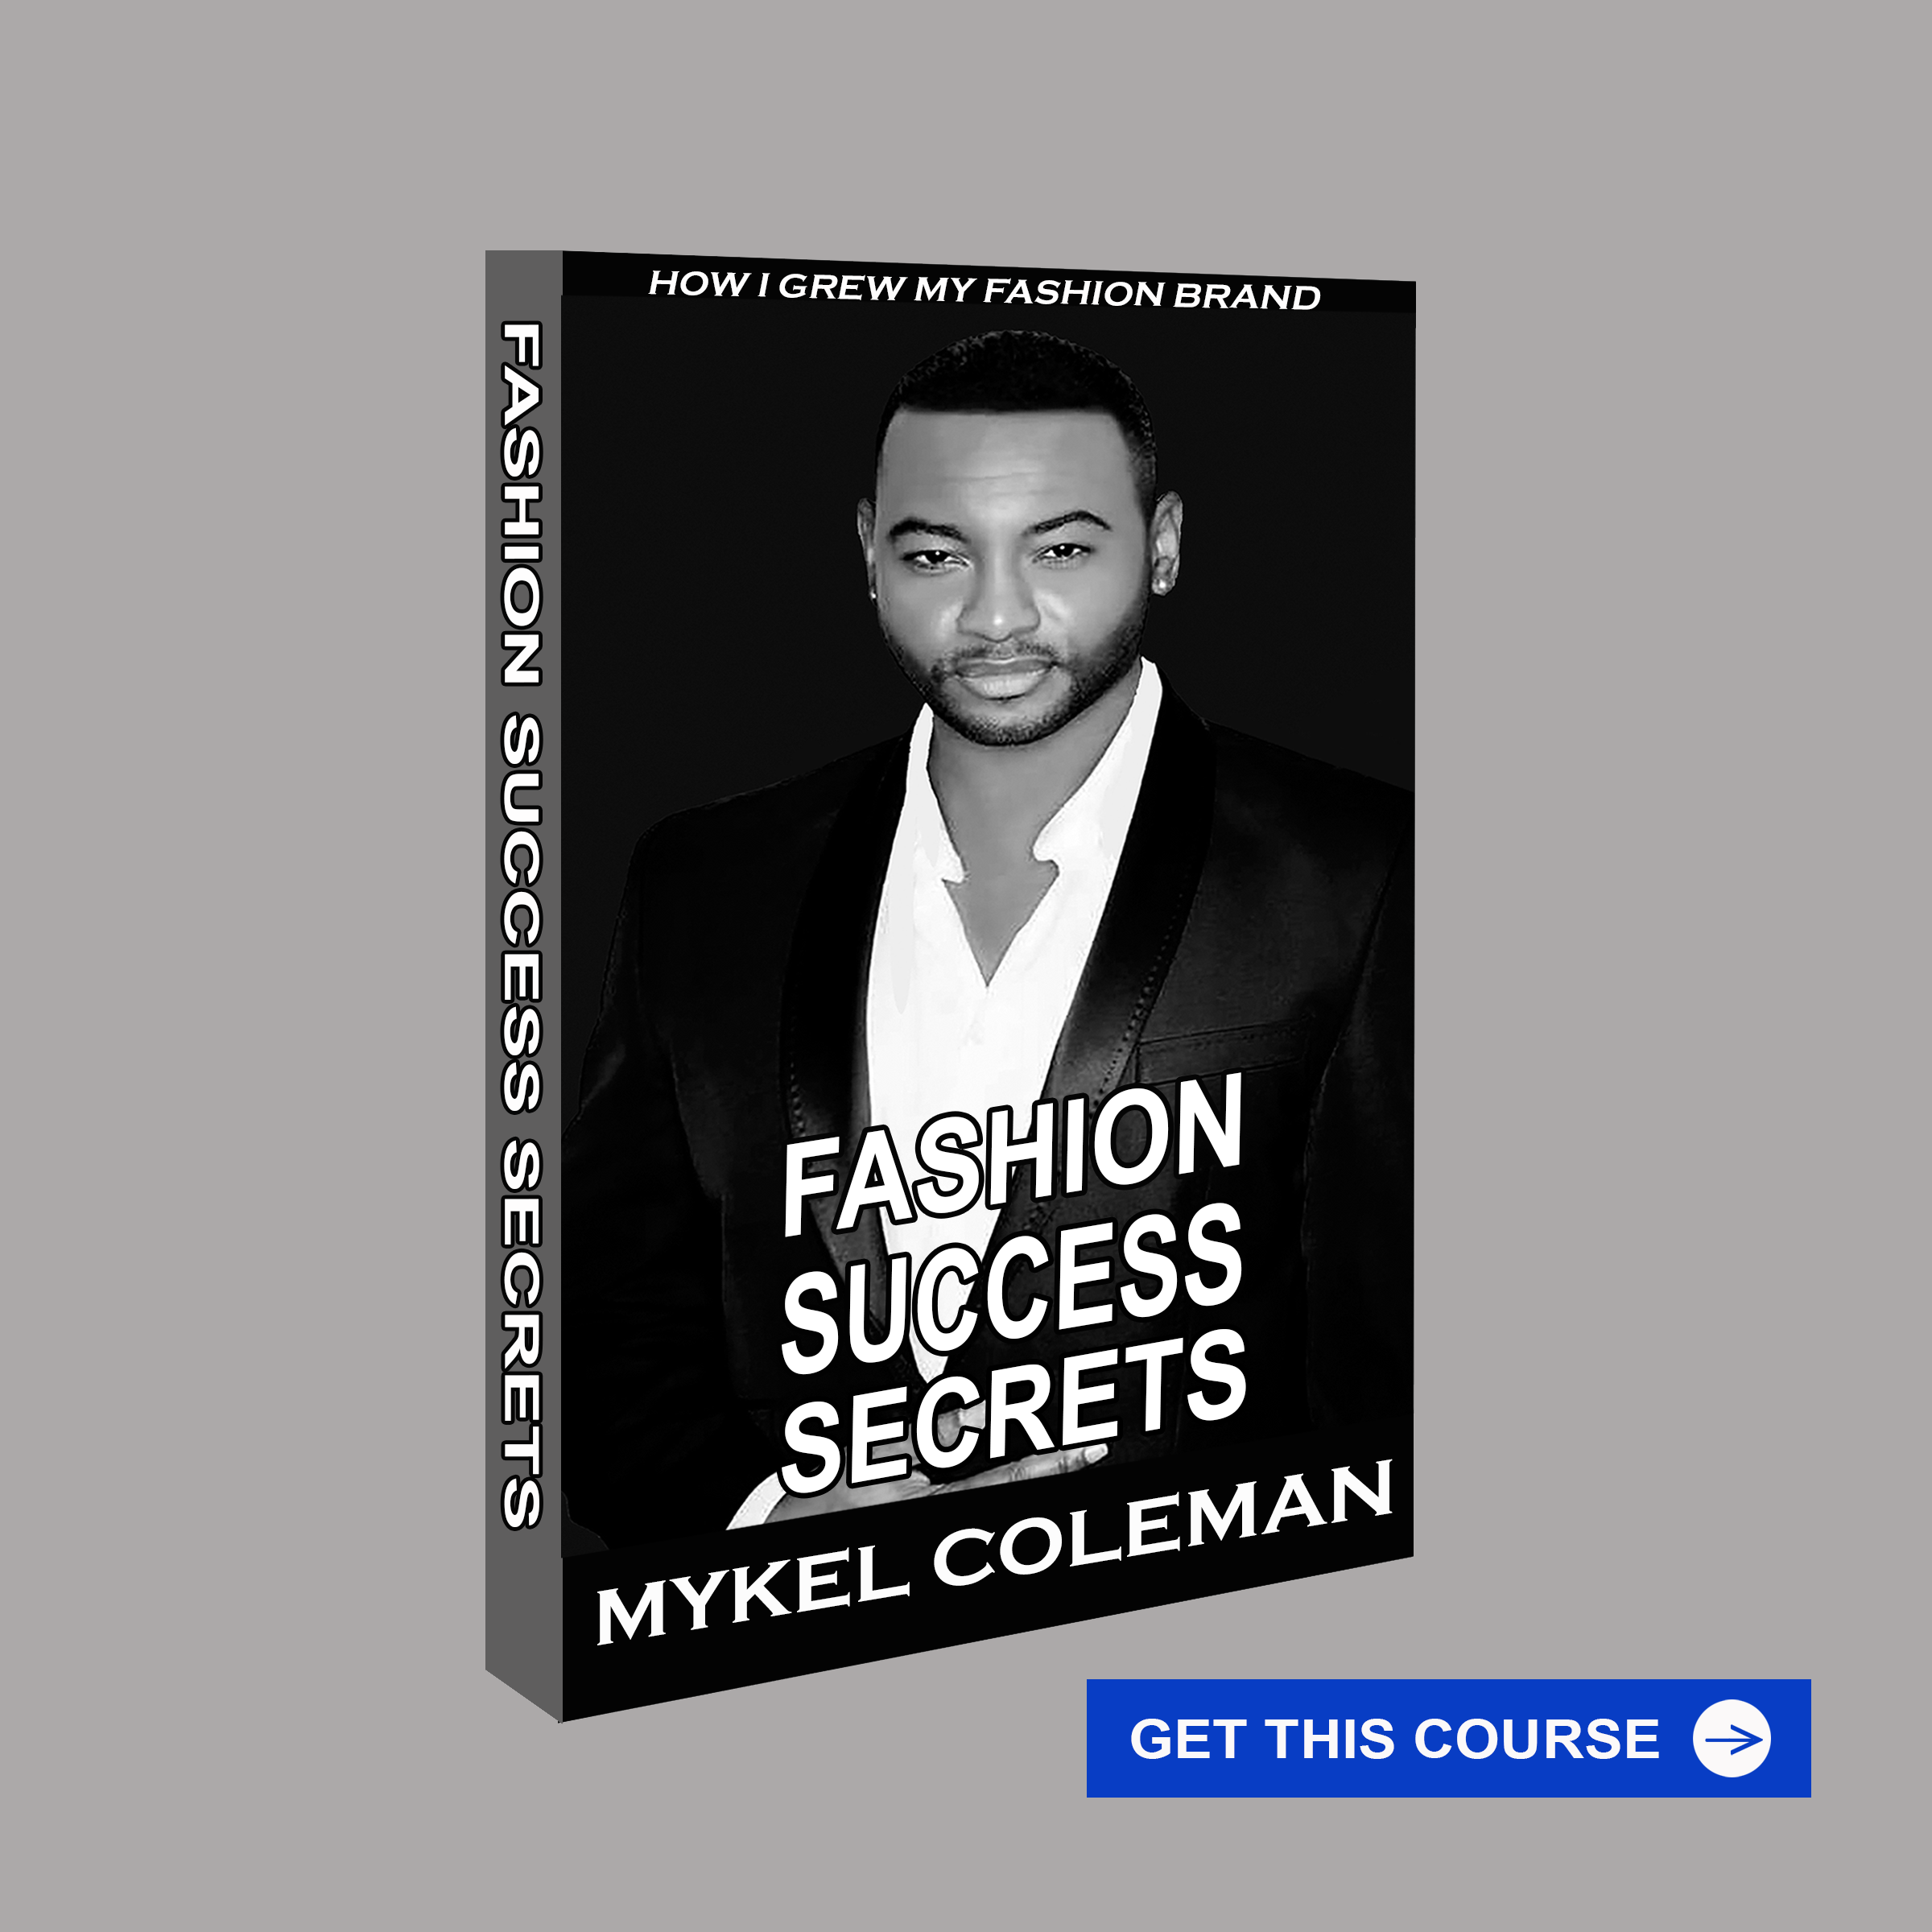 Fashion Success Secrets - Course